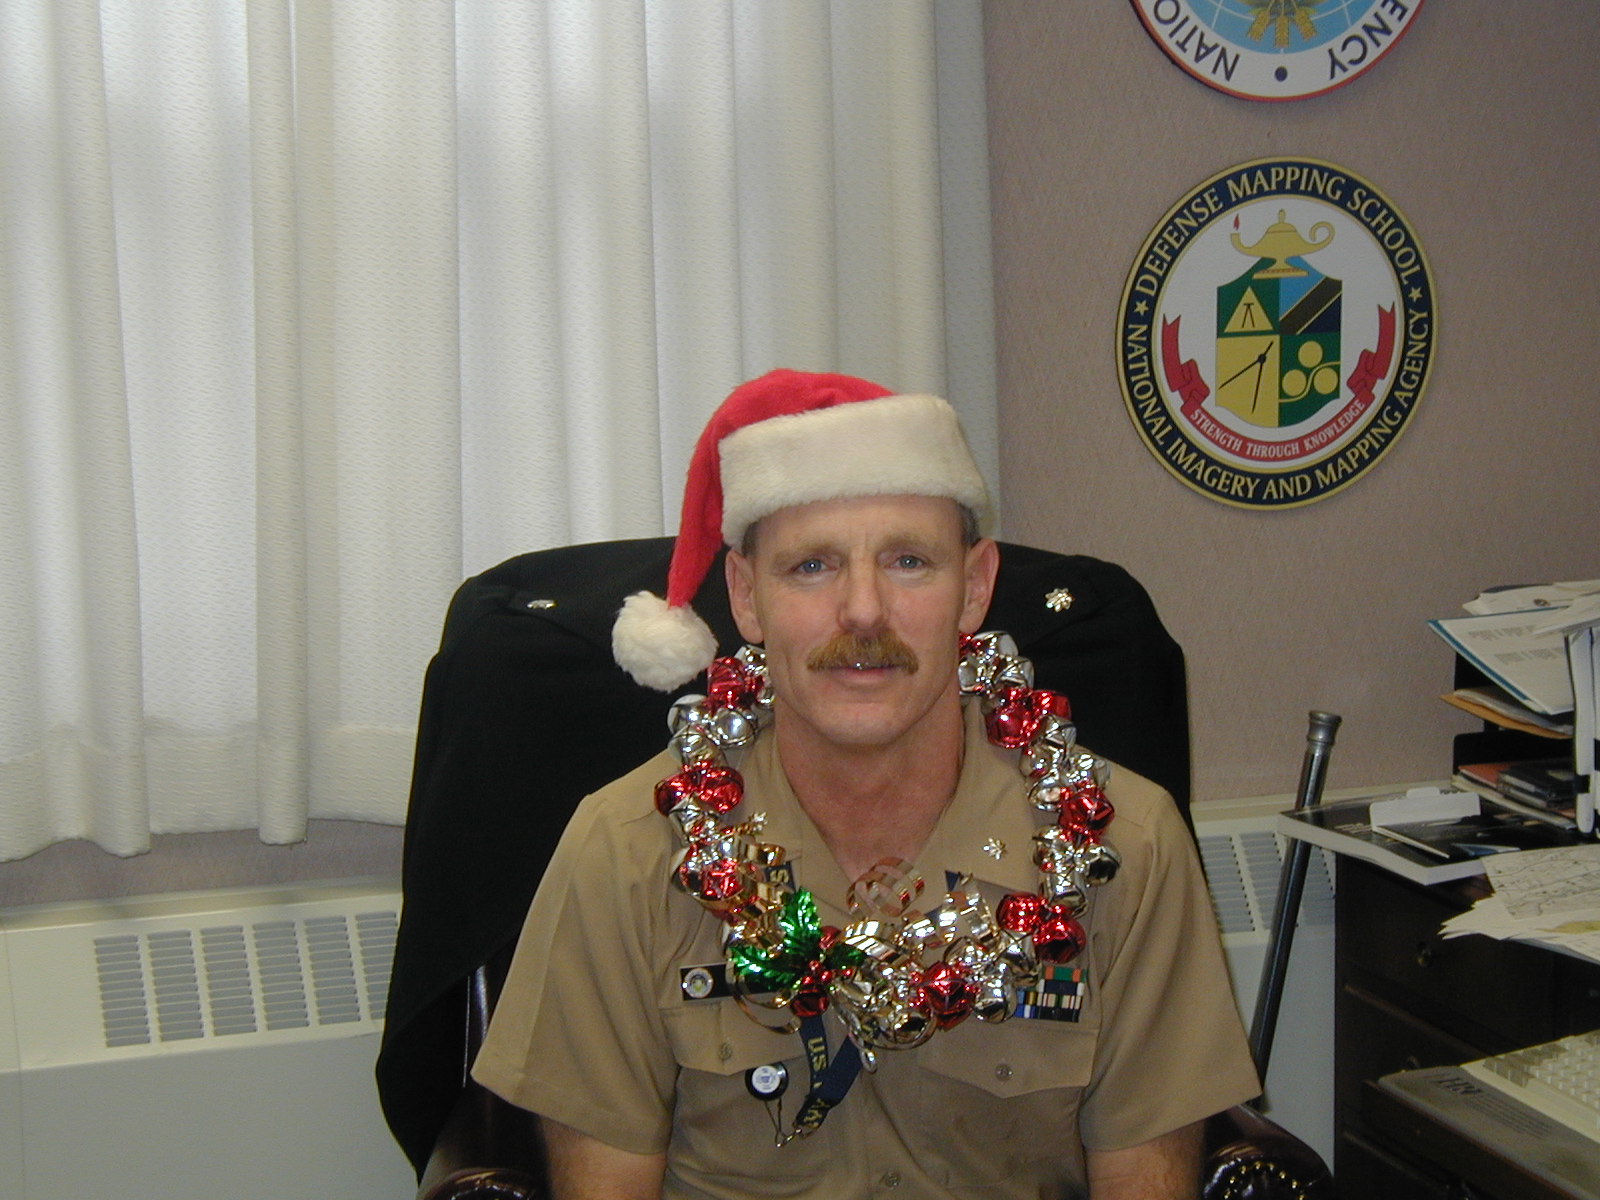 Commander Dan Taube, one of our navy's best trying out a potential new uniform - we hope the season was Christmas.